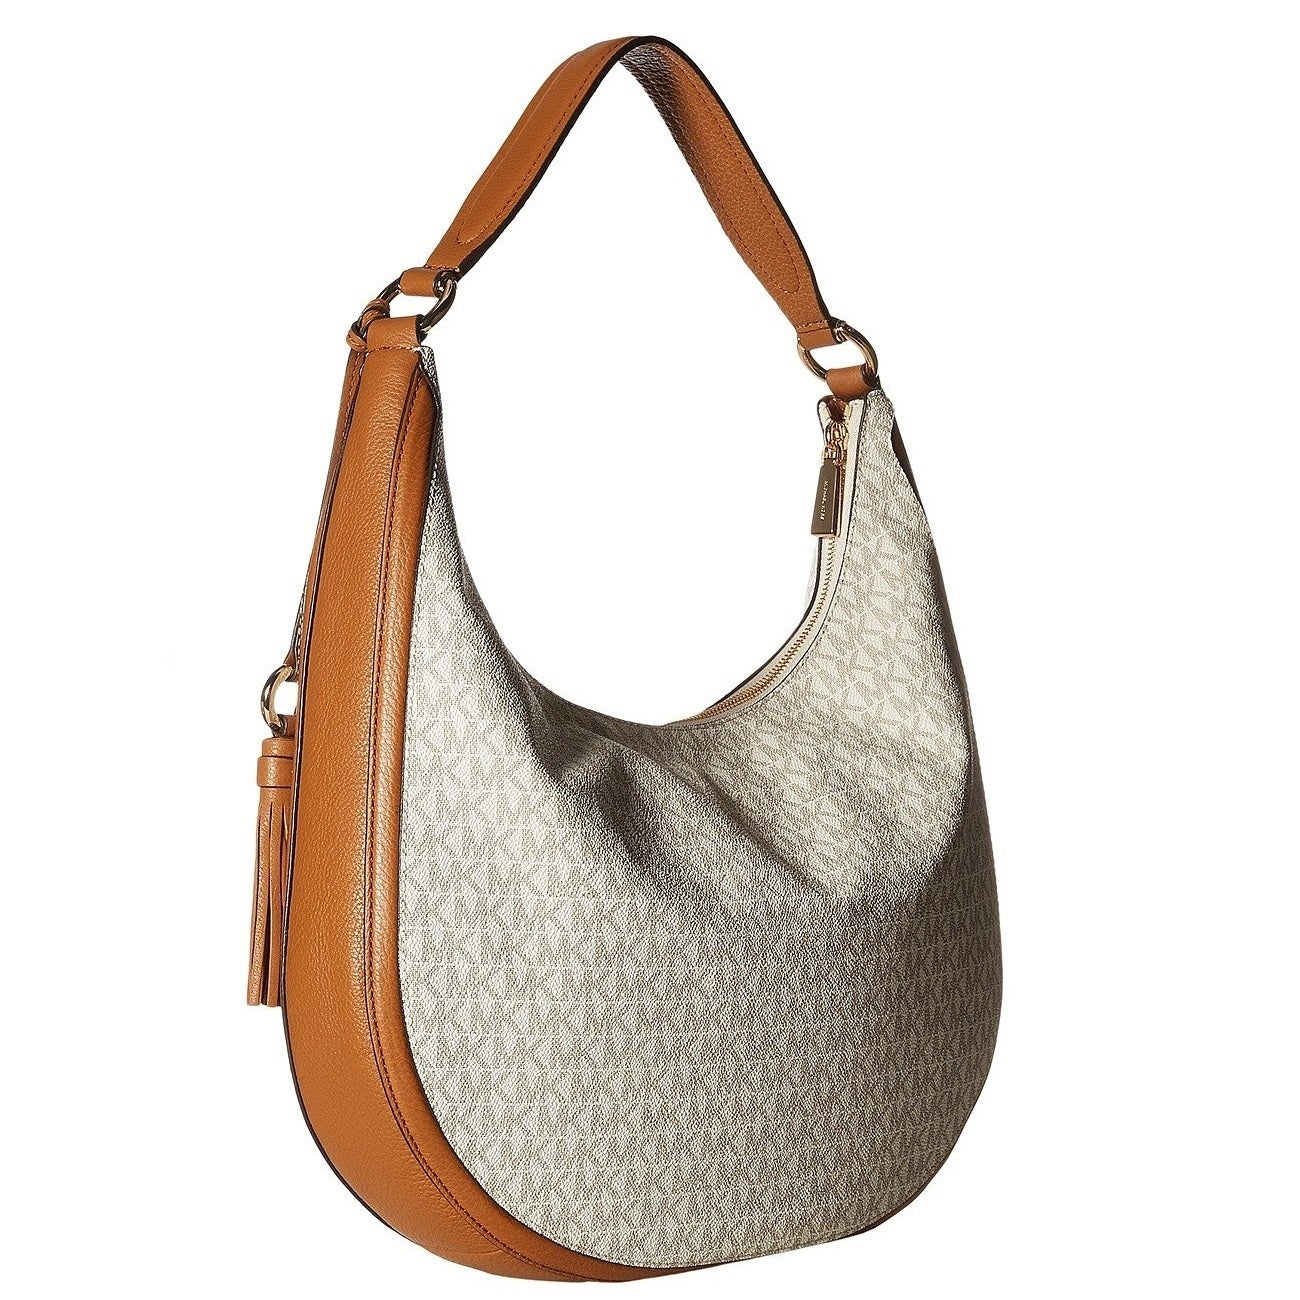 f1ca54c0078e Shop MICHAEL Michael Kors Lydia Signature Large Vanilla Hobo Bag - Free  Shipping Today - Overstock - 20056820